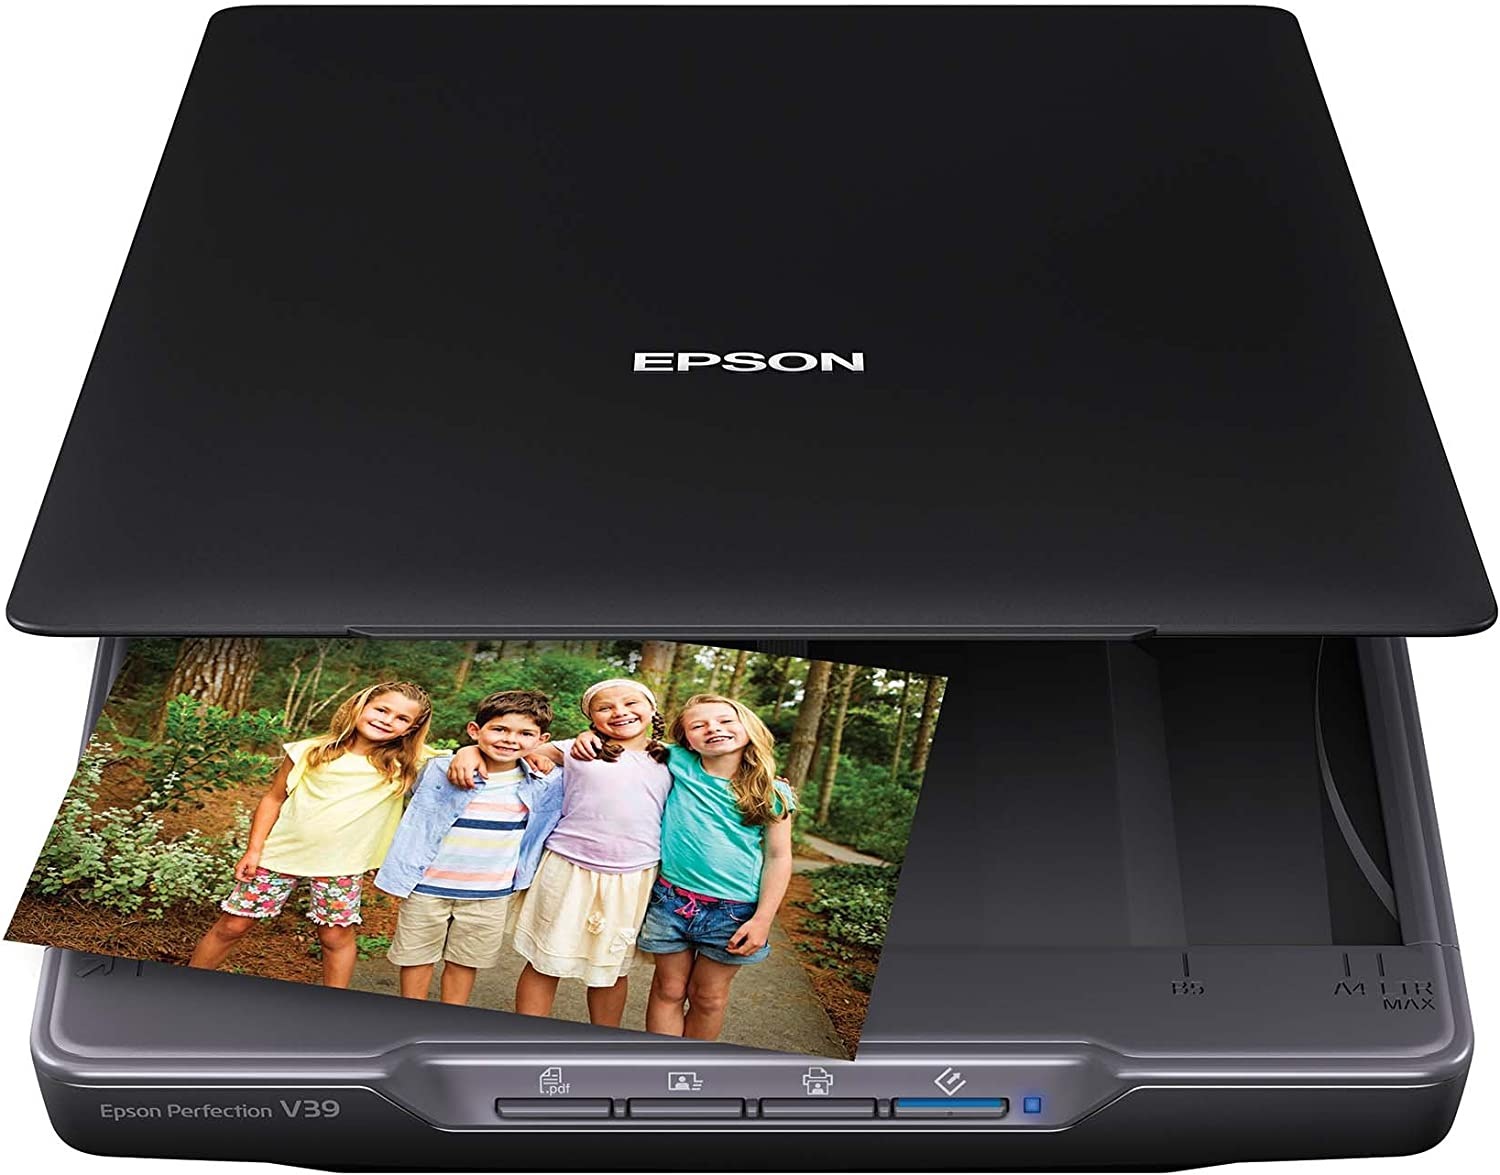 Amazon Com Epson Perfection V39 Color Photo Document Scanner With Scan To Cloud 4800 Optical Resolution Black Electronics